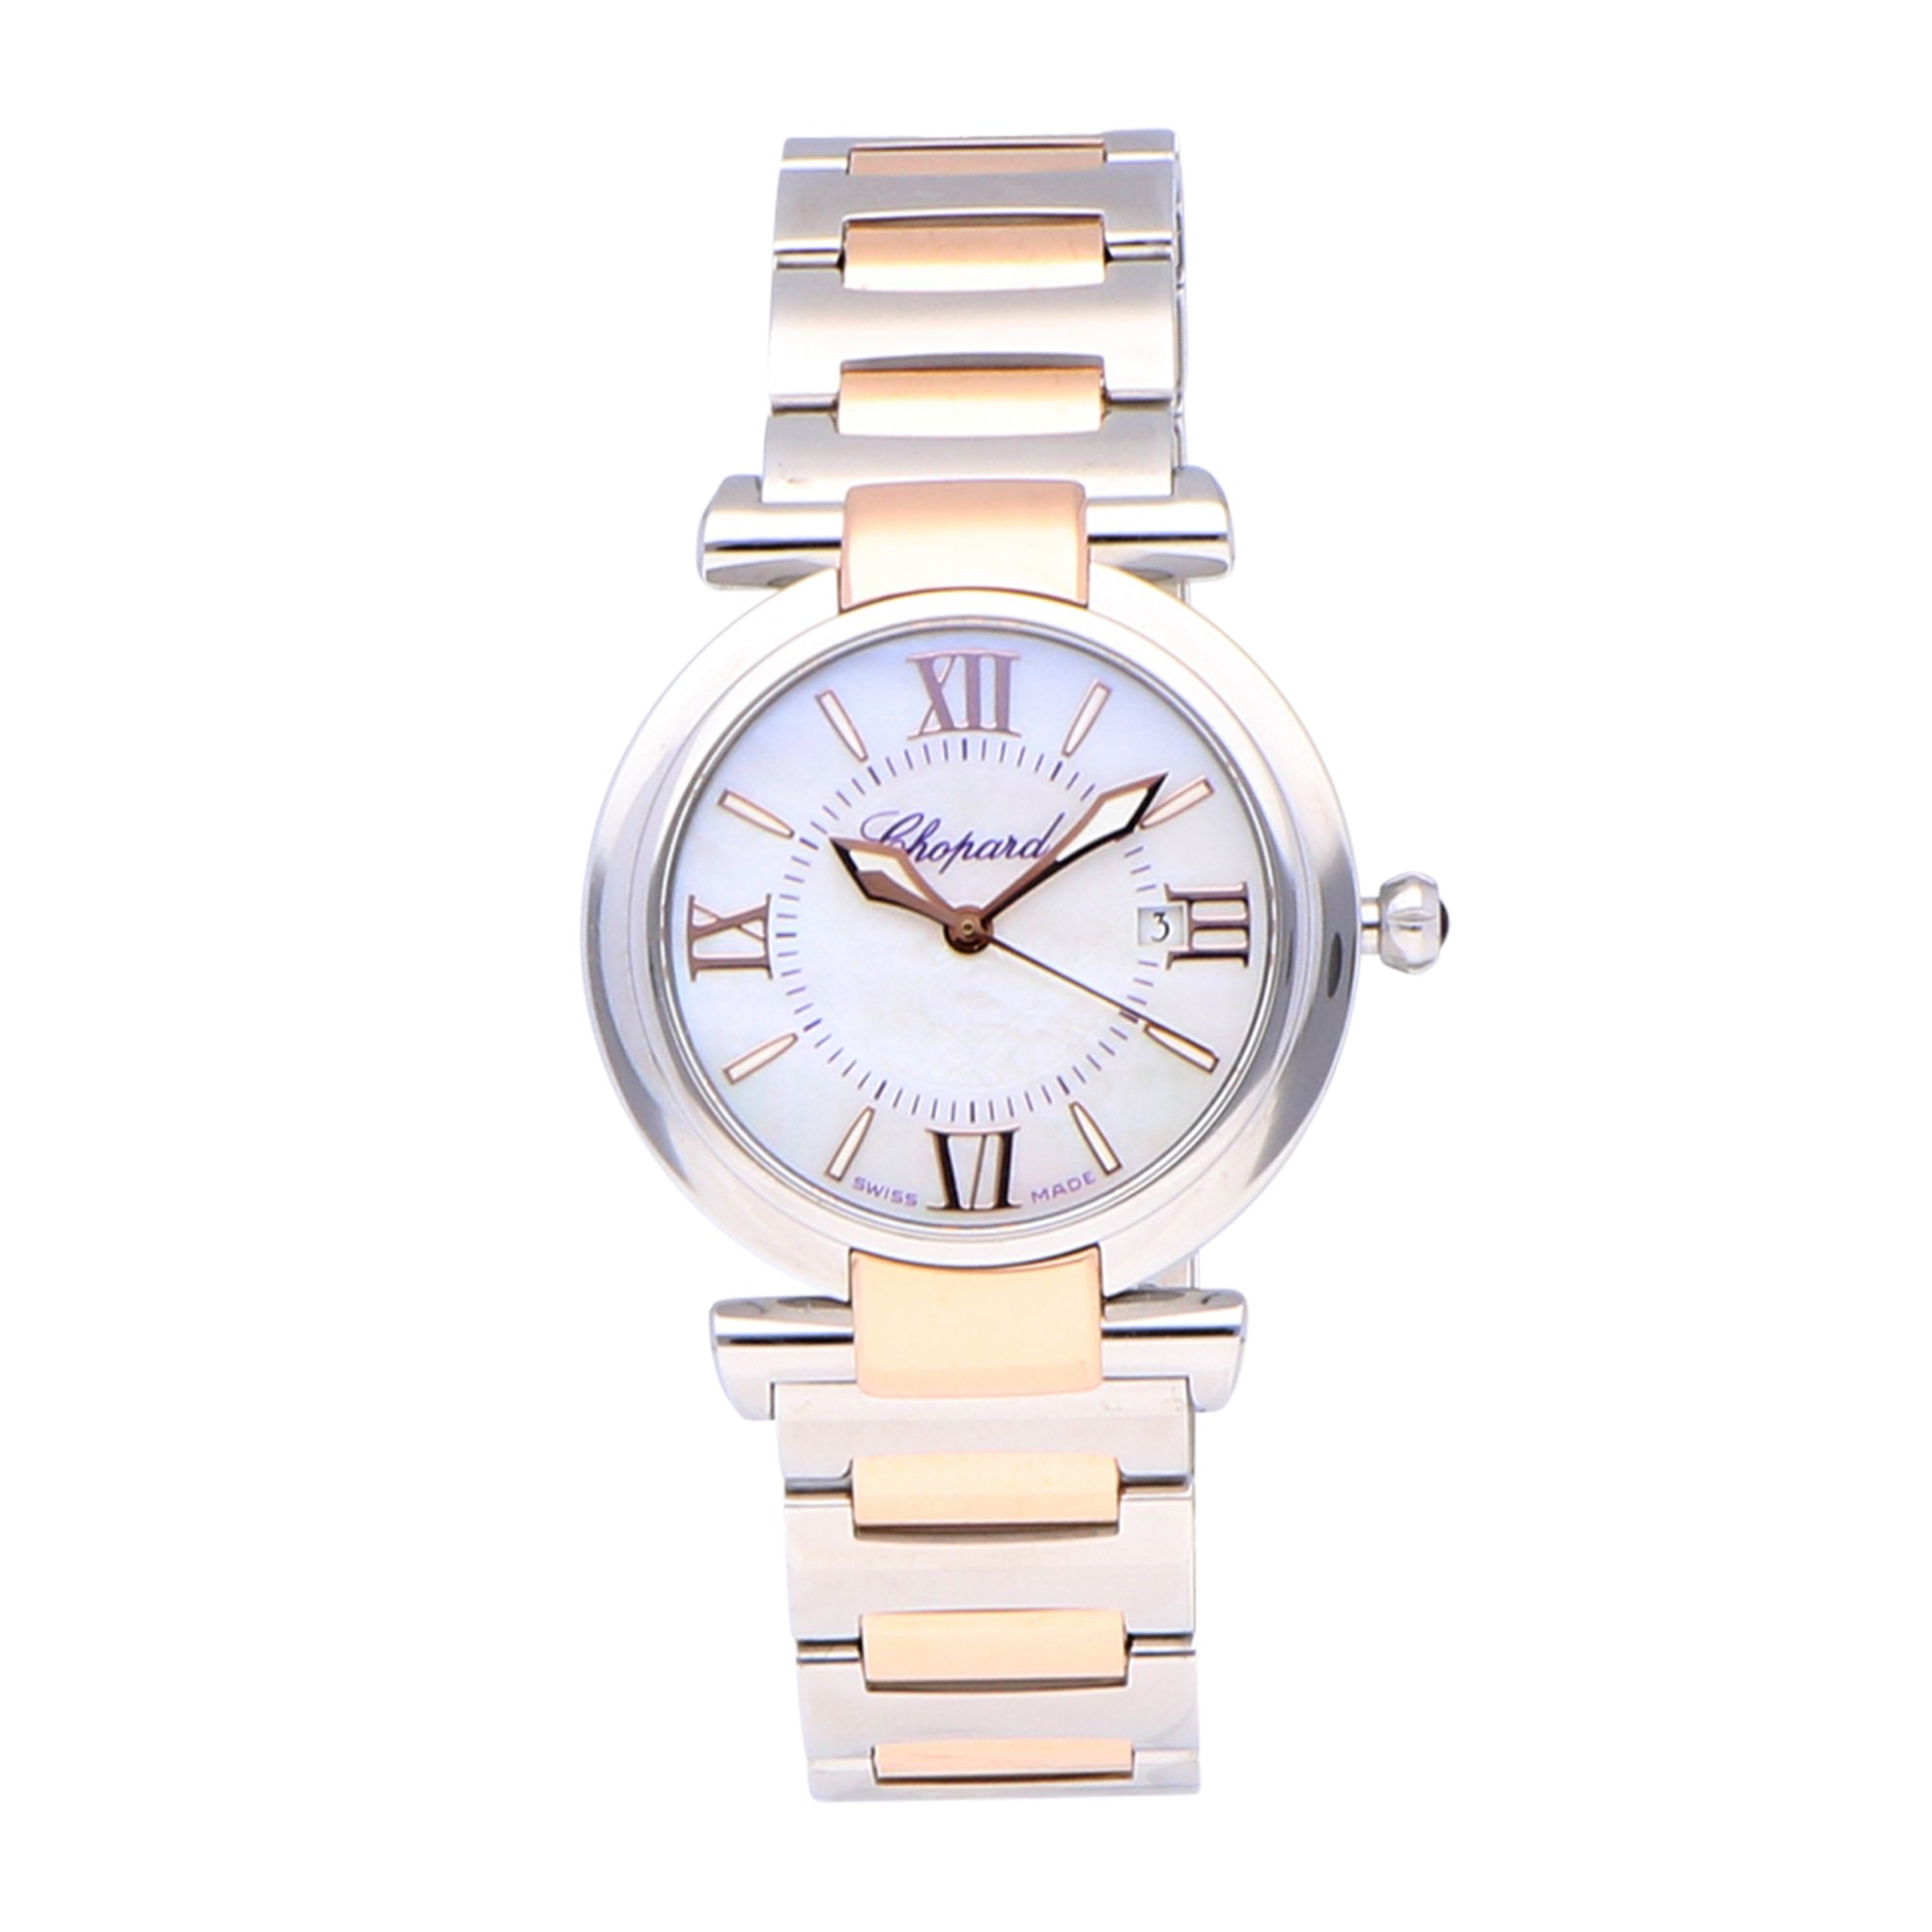 Chopard Imperiale Stainless Steel & Rose Gold 388541-6002